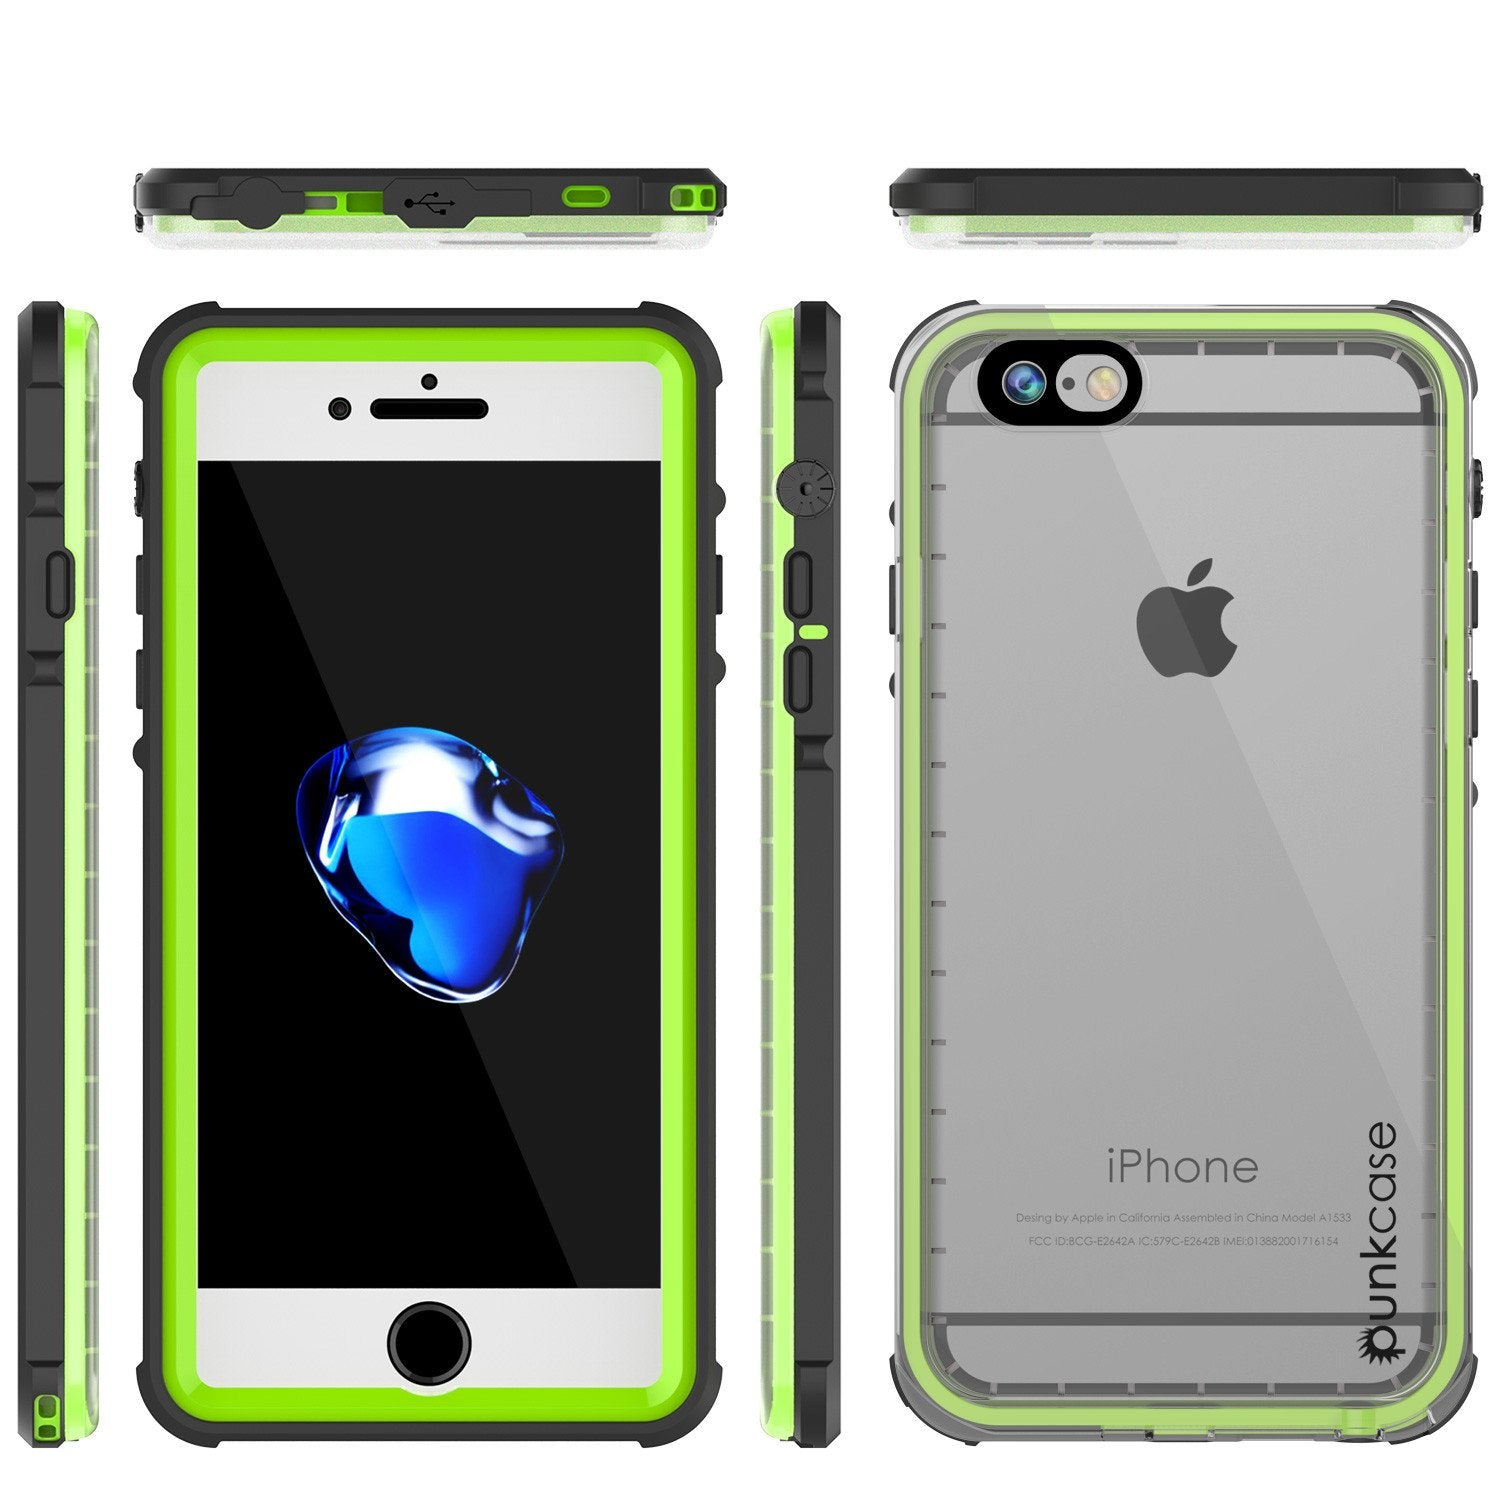 Apple iPhone 8 Waterproof Case, PUNKcase CRYSTAL Light Green  W/ Attached Screen Protector  | Warranty